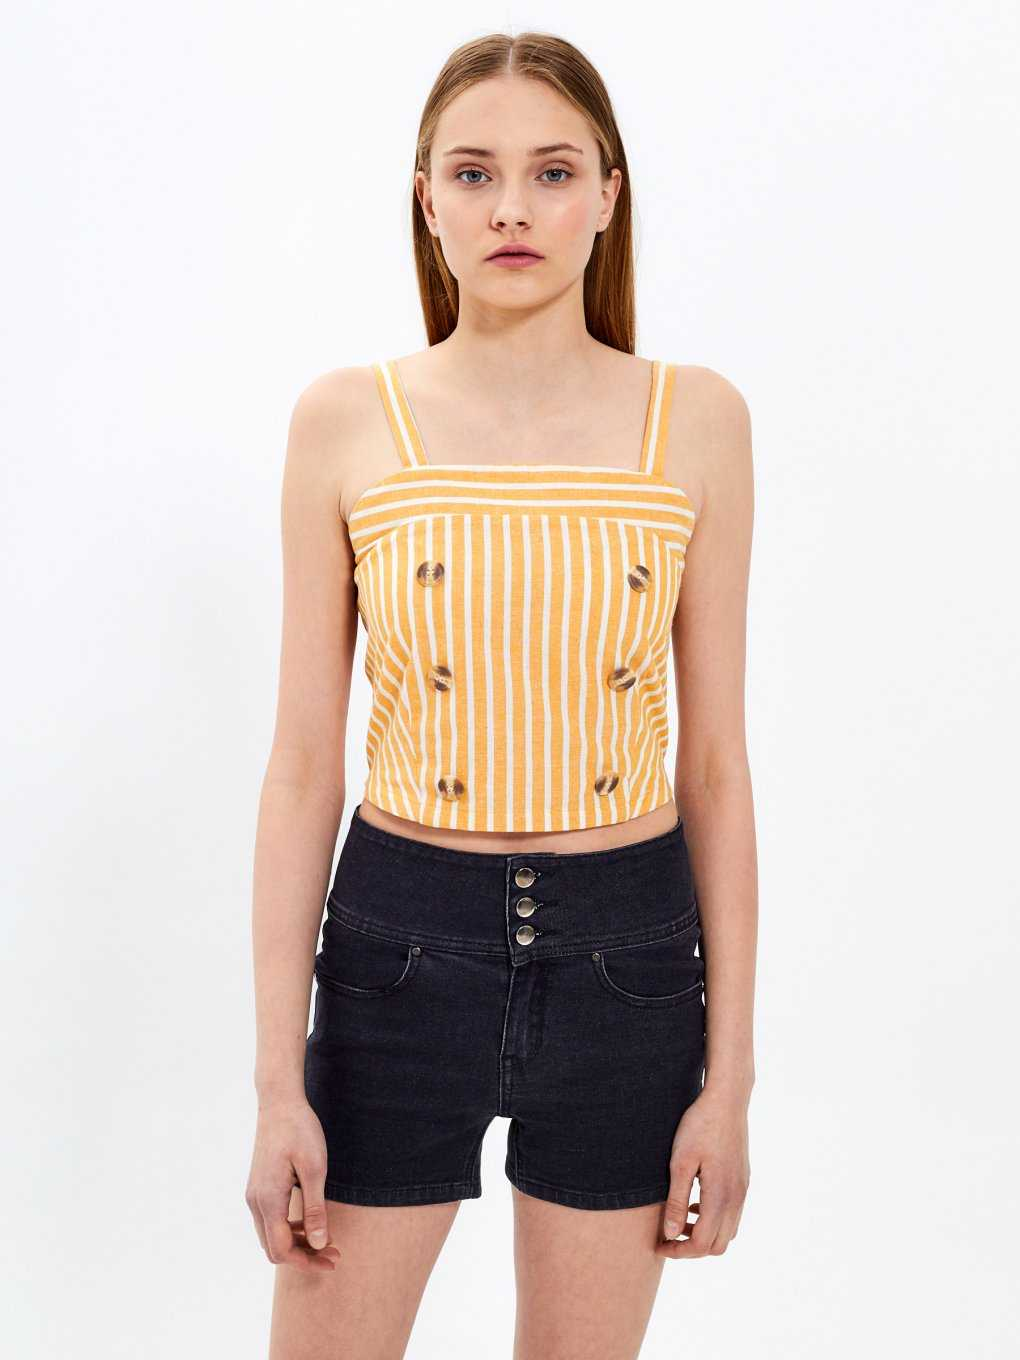 Striped crop top with tortoise shell buttons